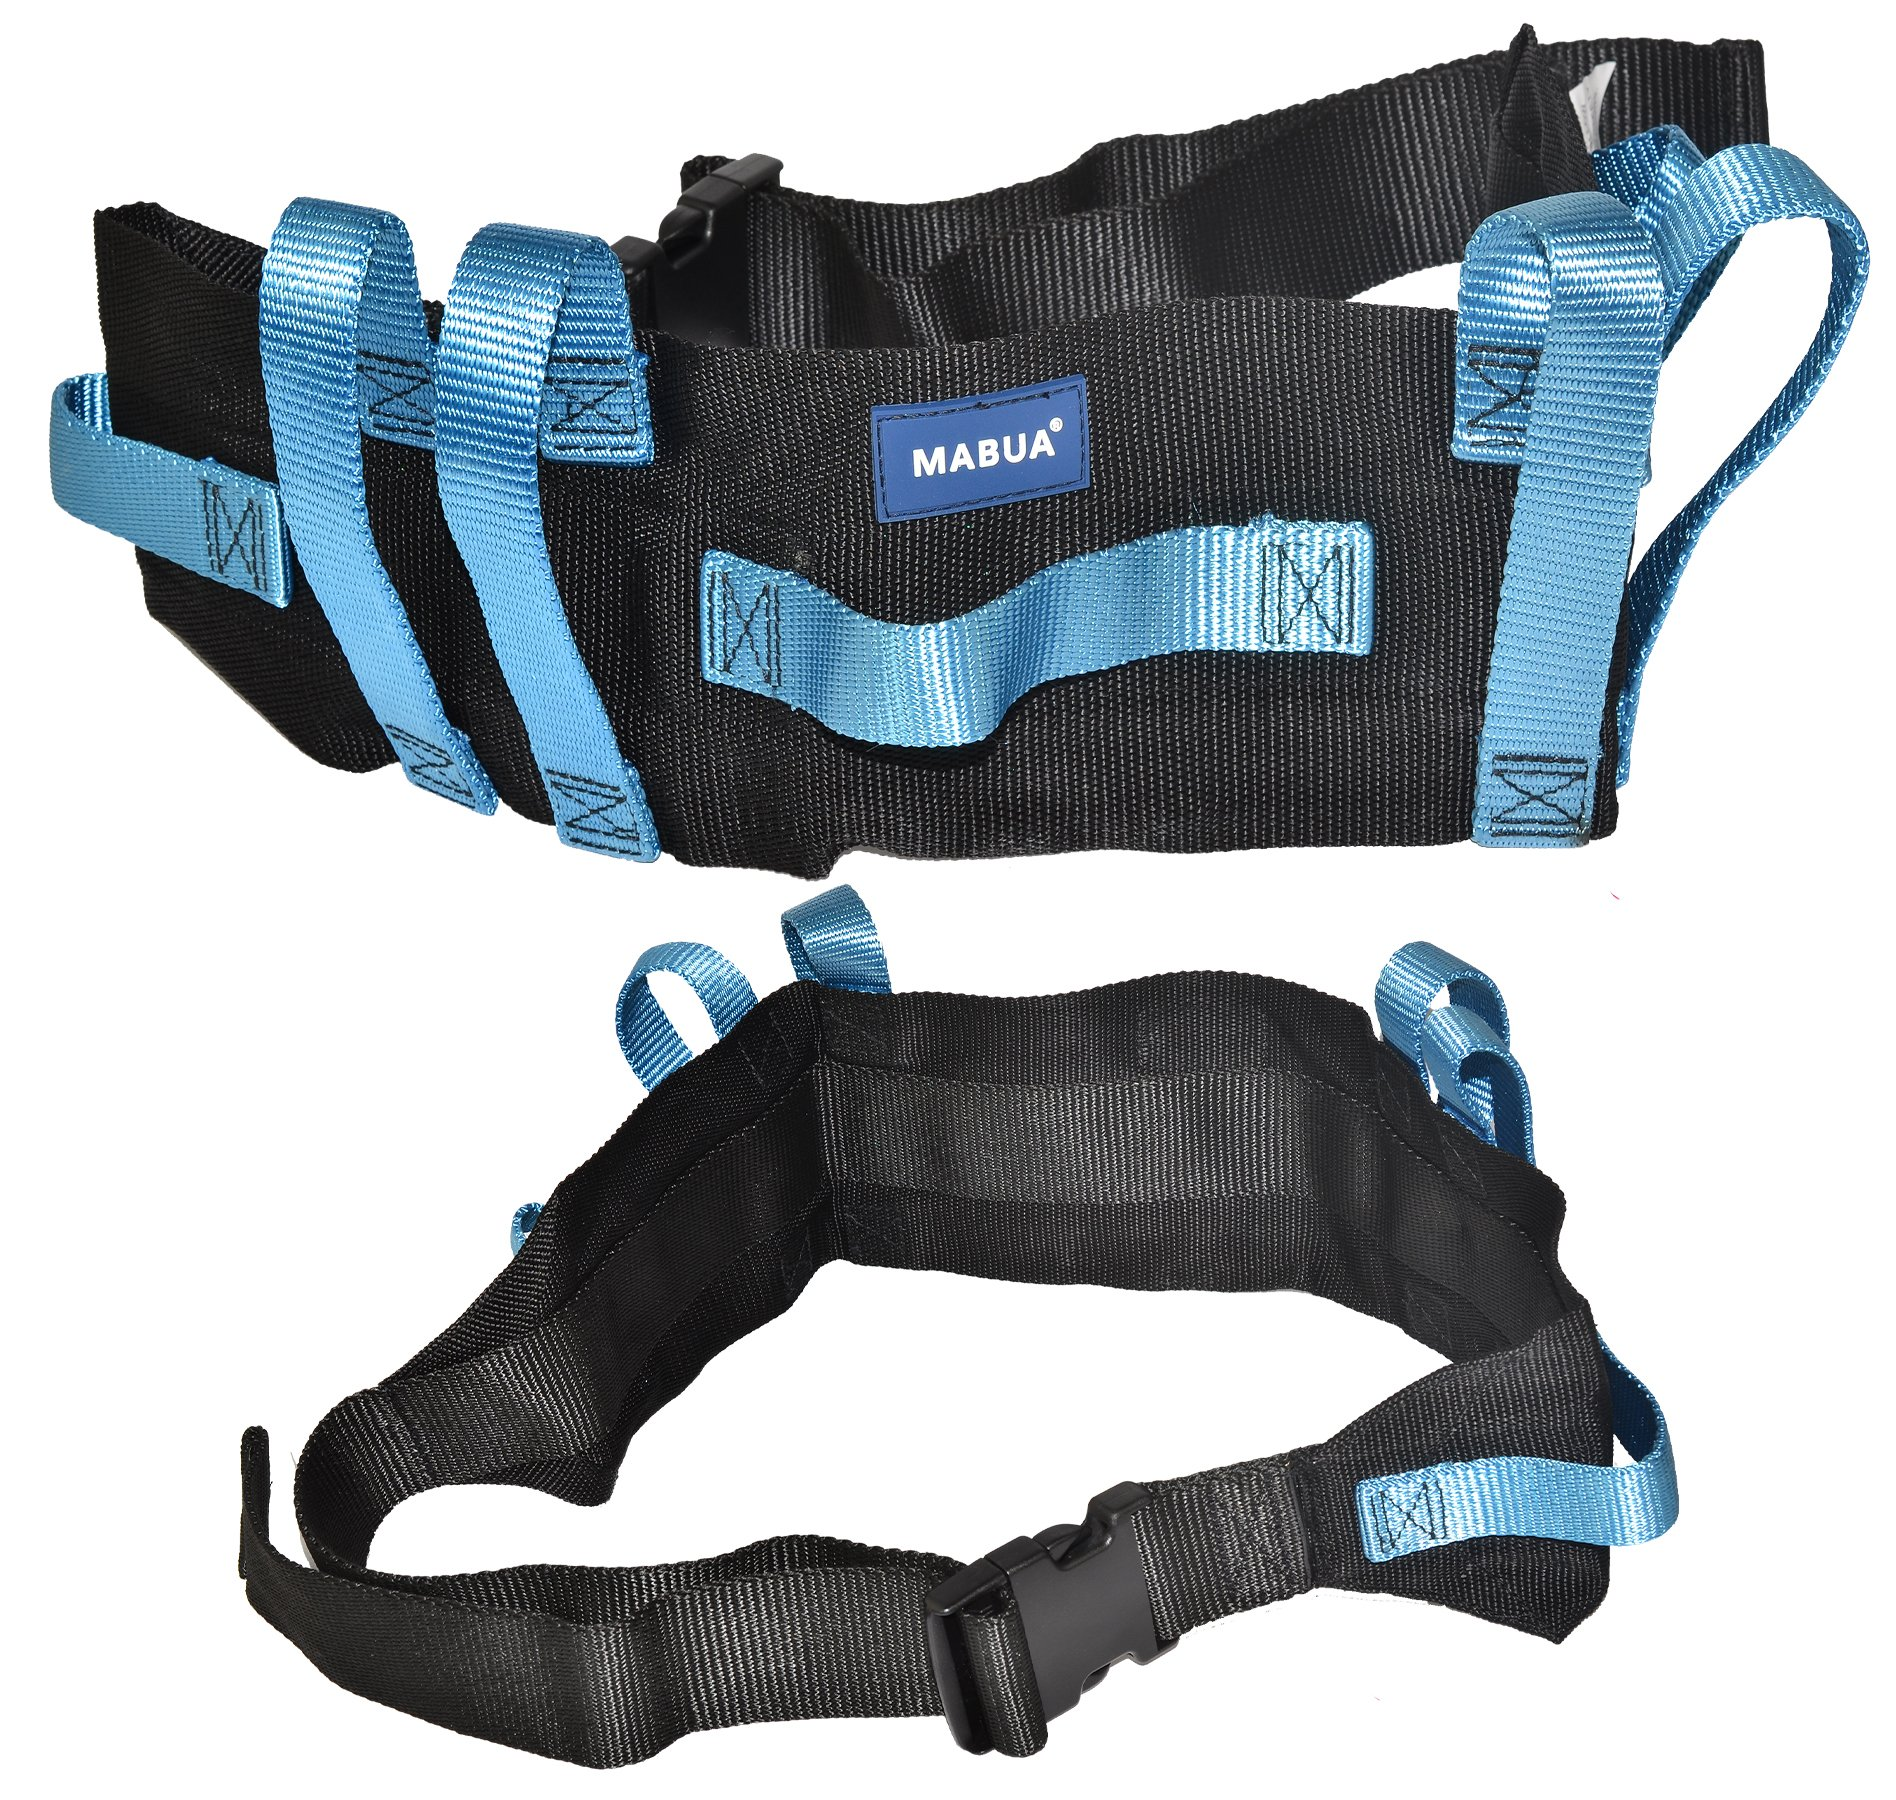 Transfer Gait Belt with 7 Loop Handles Grips & Easy Release 60 inches Plastic Buckle. Available in Metal Buckle. by MABUA